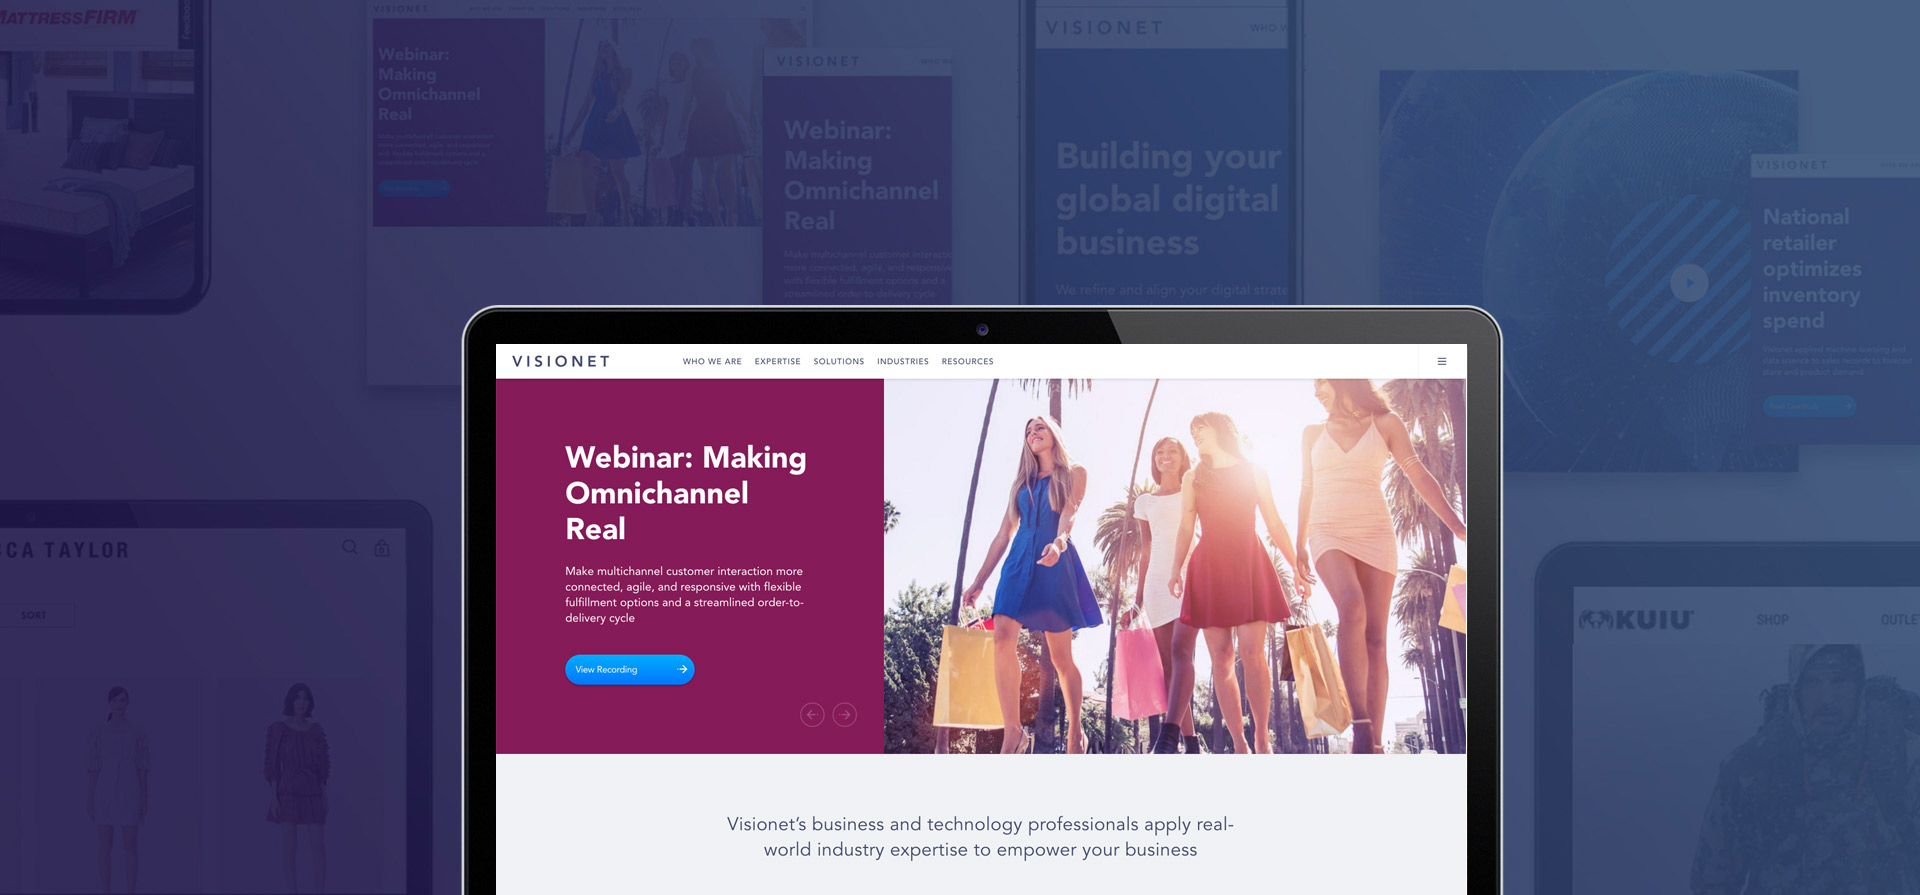 Visionet Launches a Brand New Website